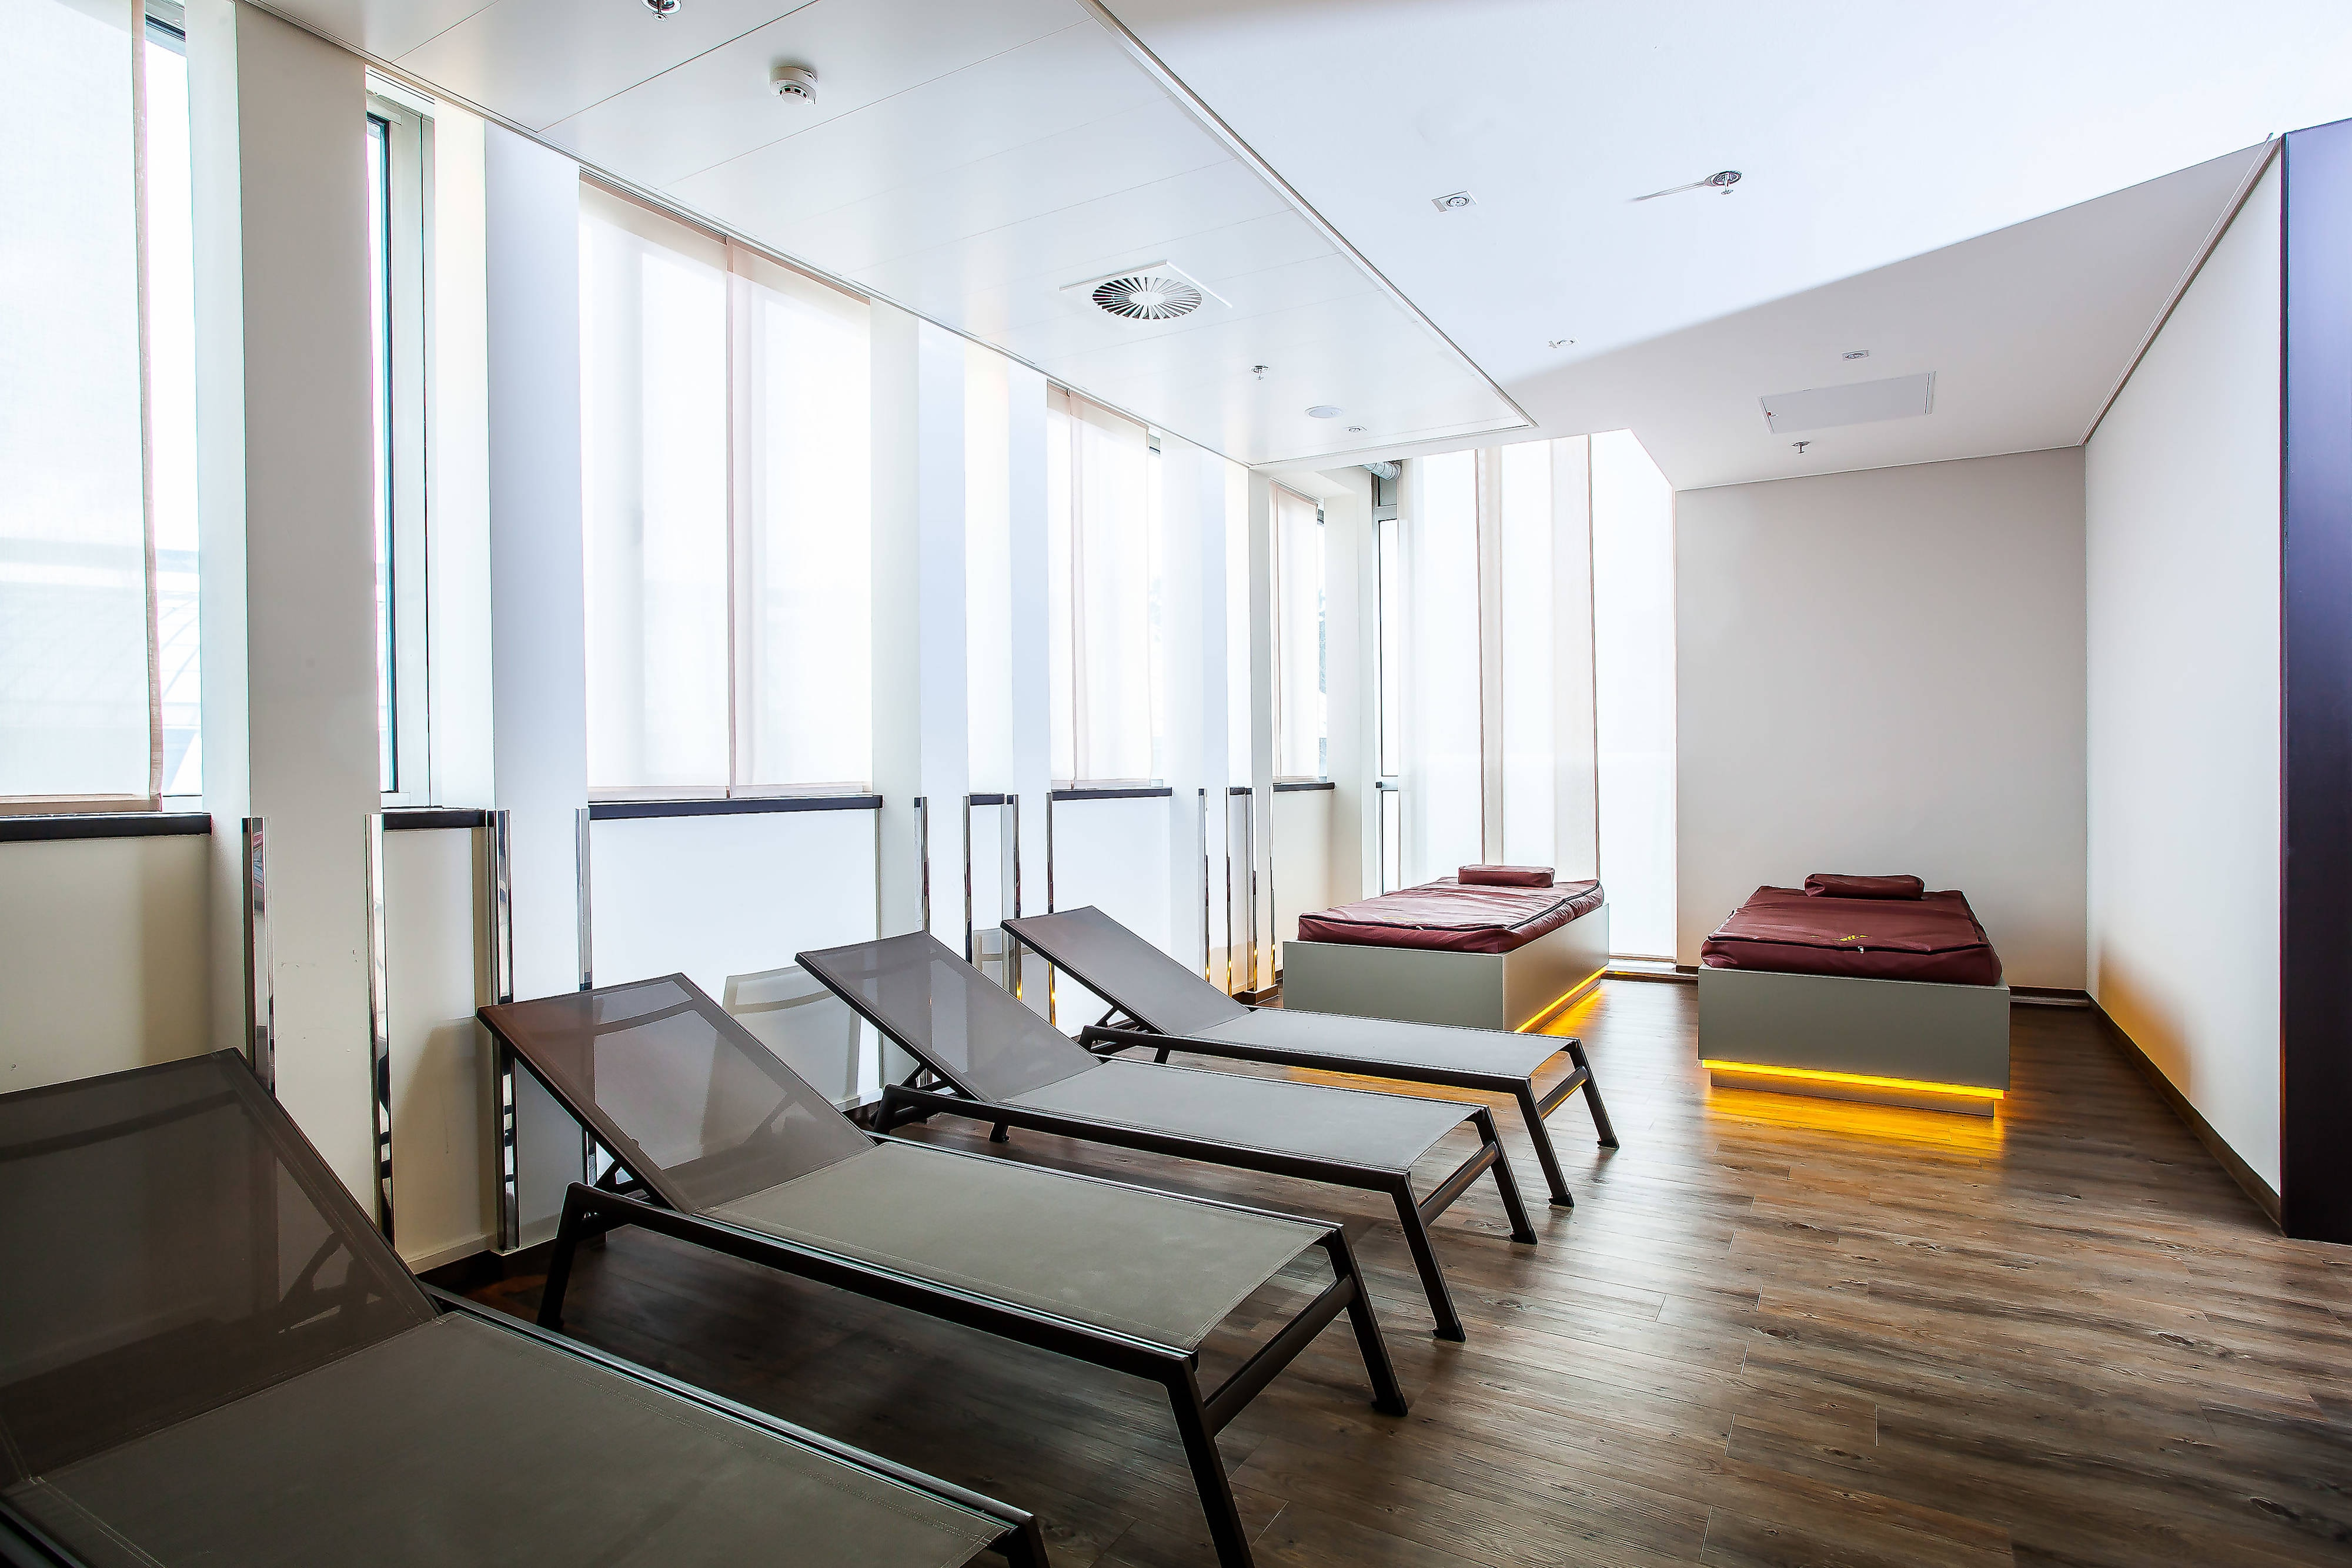 Health Club in Hotel in Linz